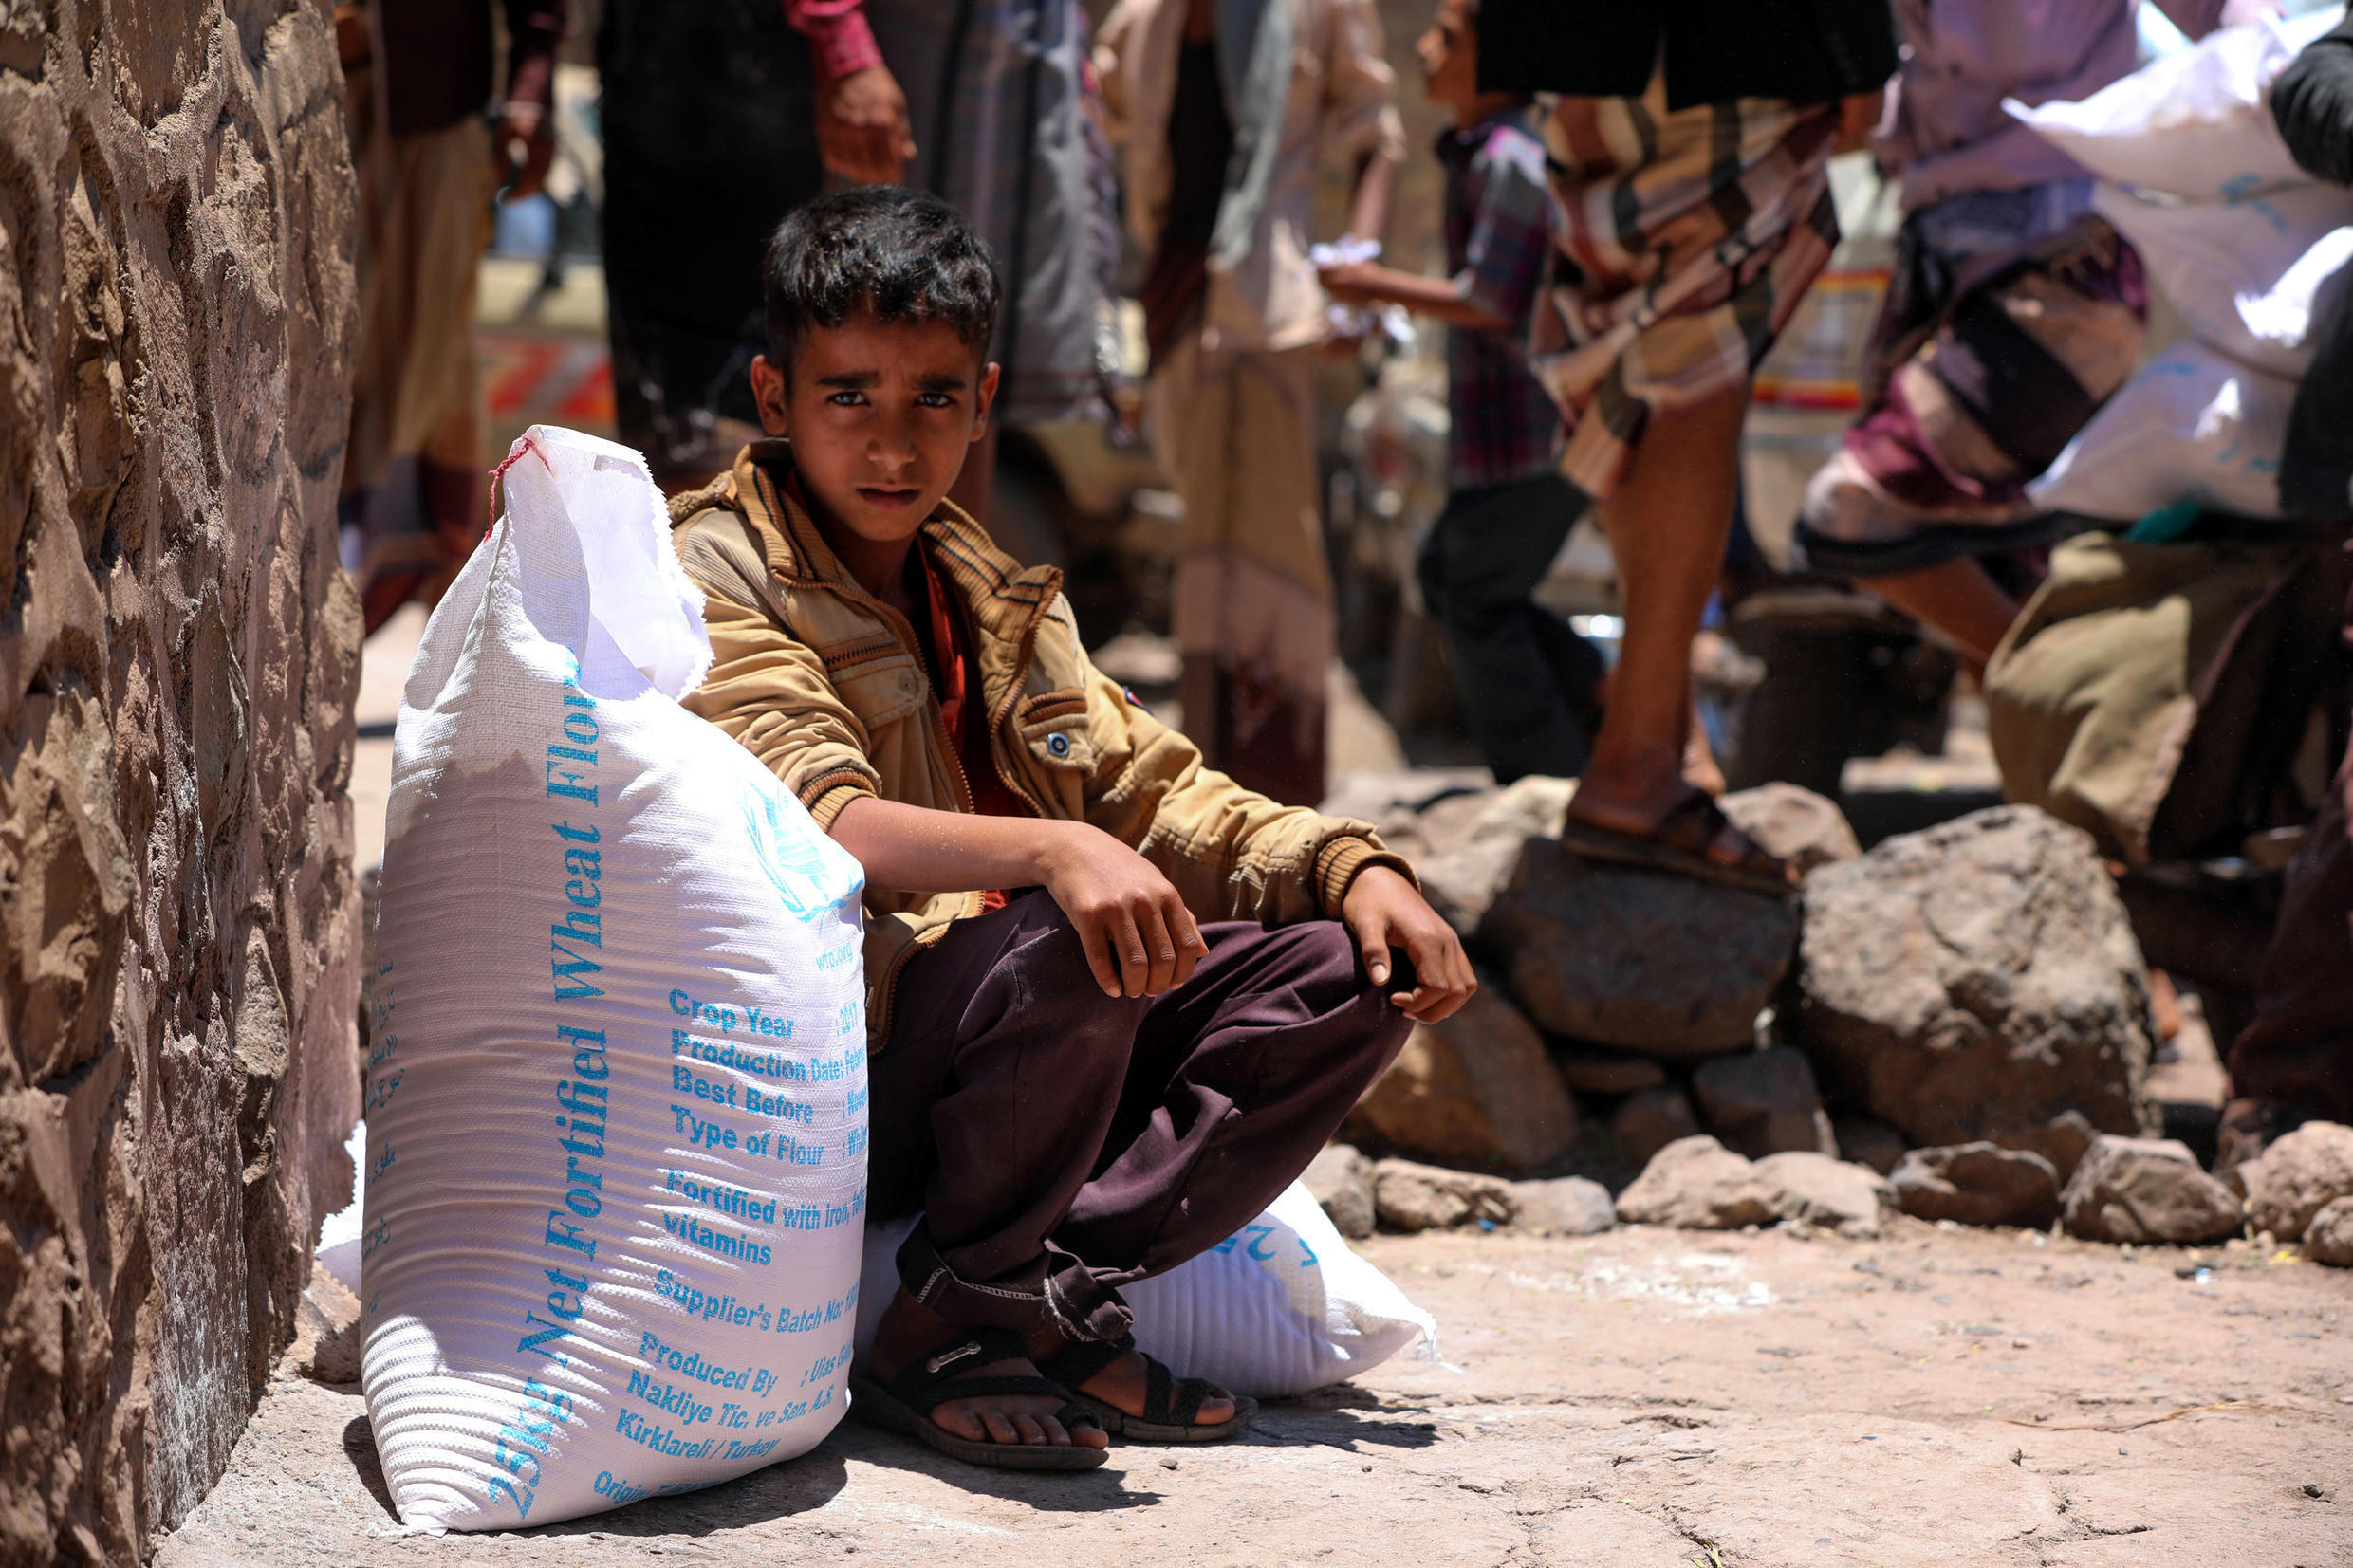 A Yemeni boy receives aid donated by the World Food Programme (WFP) in the country's third city of Taez, in October 2020 -- UN chief Antonio Guterres warns Yemen is in imminent danger of the worst famine the world has seen in decades